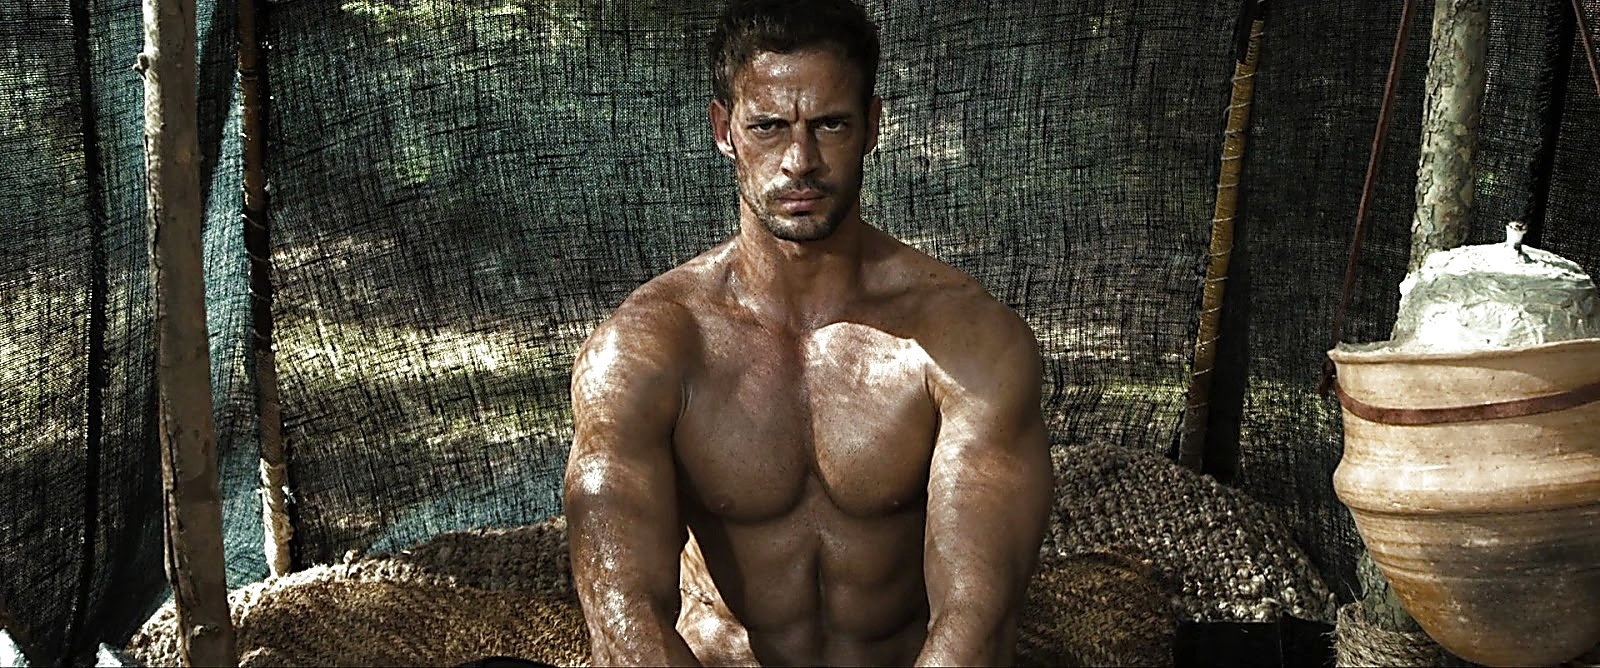 William Levy sexy shirtless scene May 19, 2017, 11am